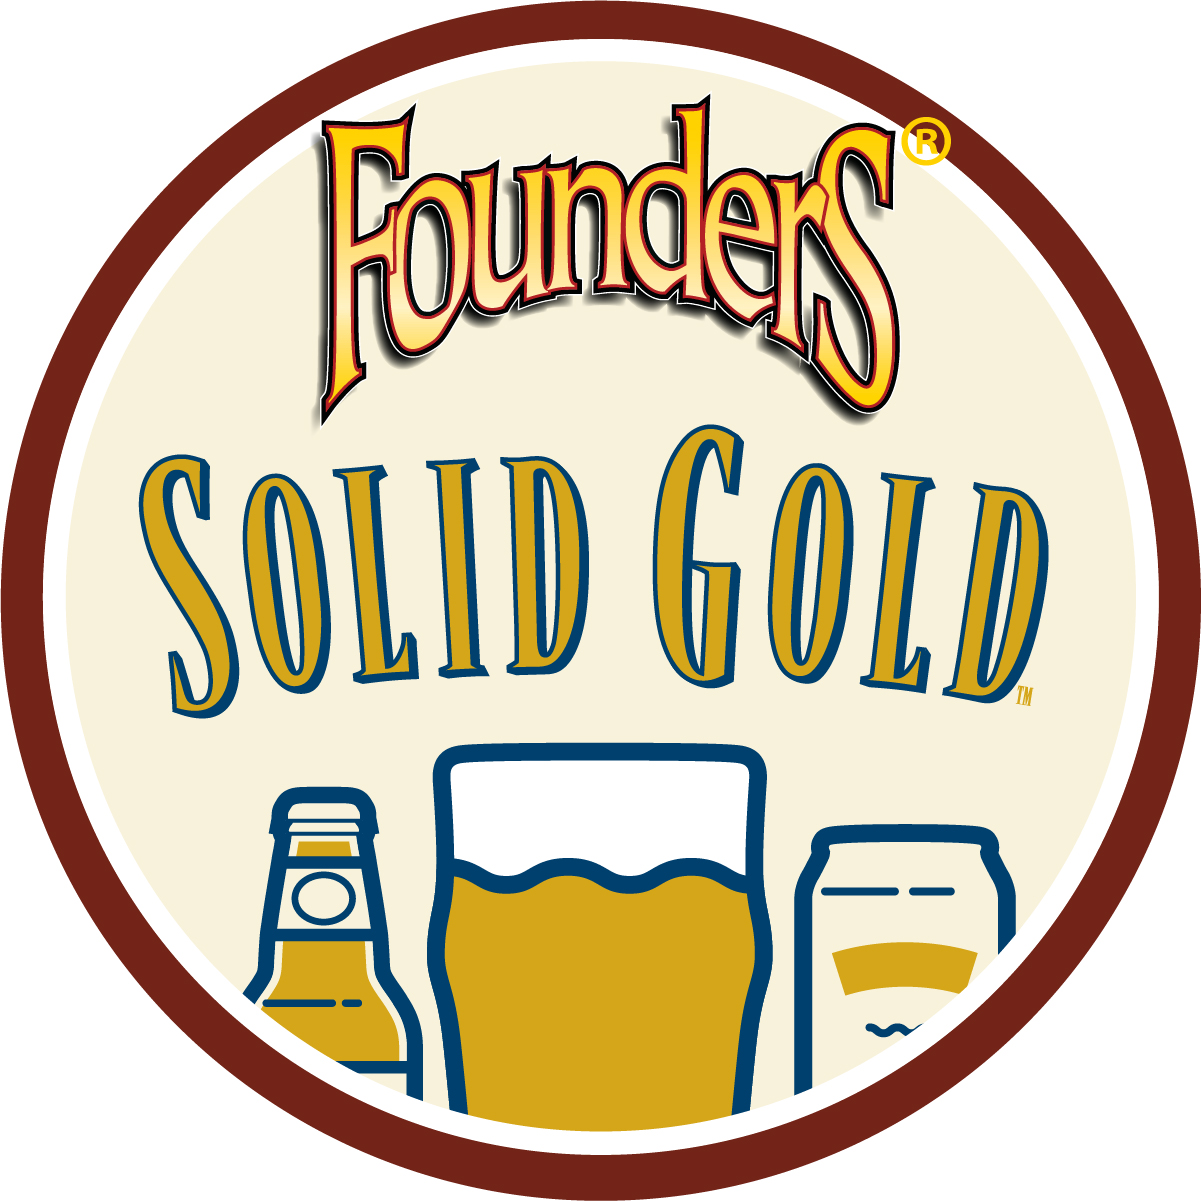 Founders Solid Gold badge